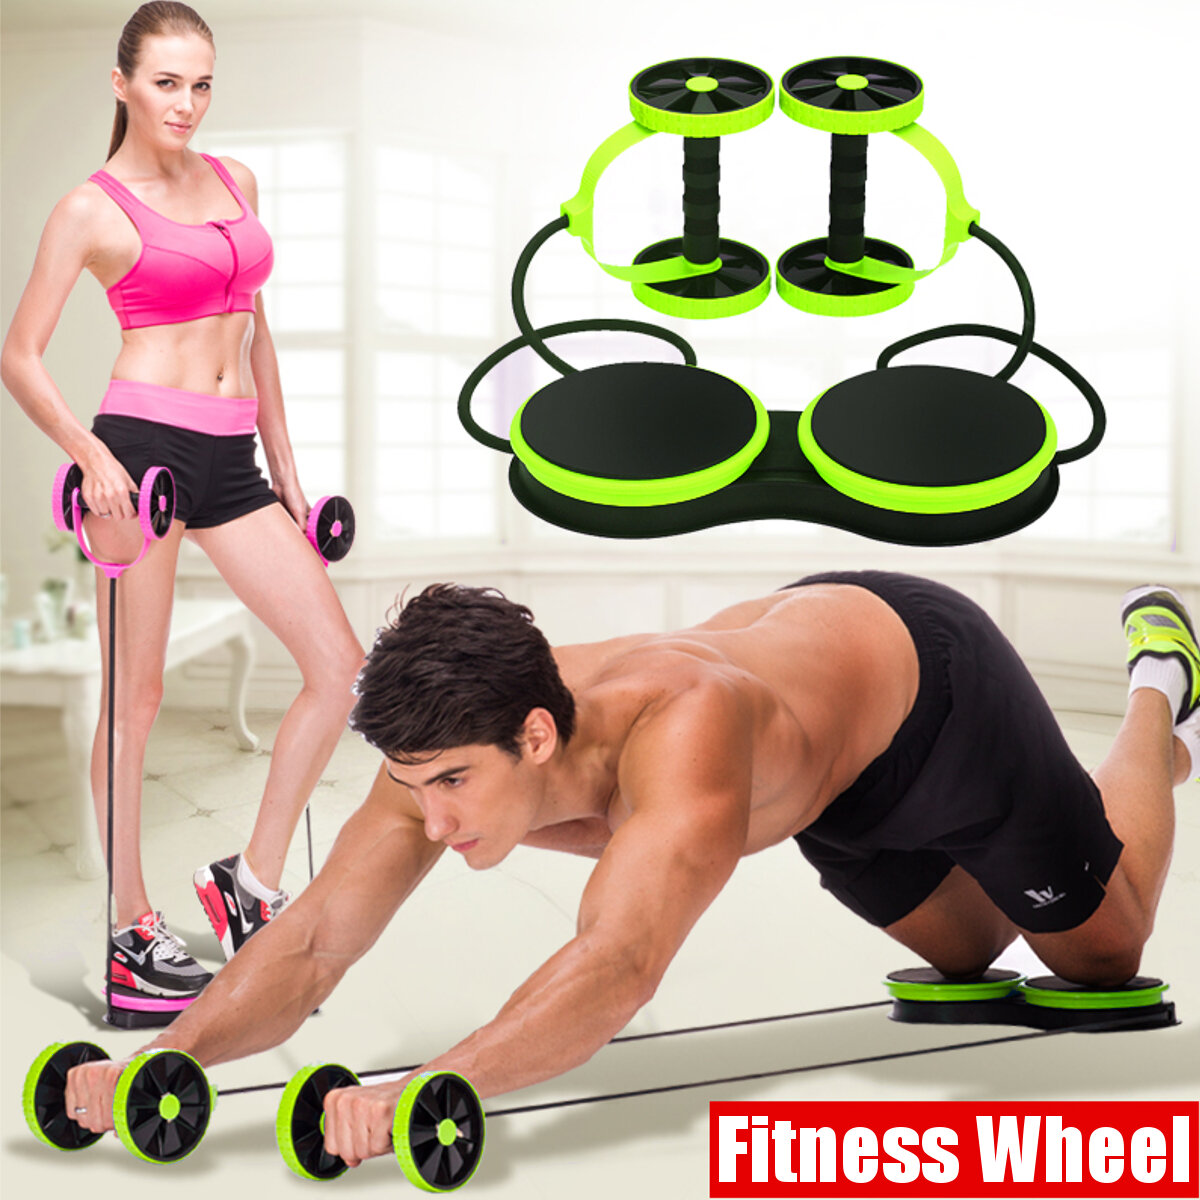 Double Wheel AB Roller Sport Core Fitness Abdominal Exercises Equipment Waist Slimming Trainer Abdominal Tr